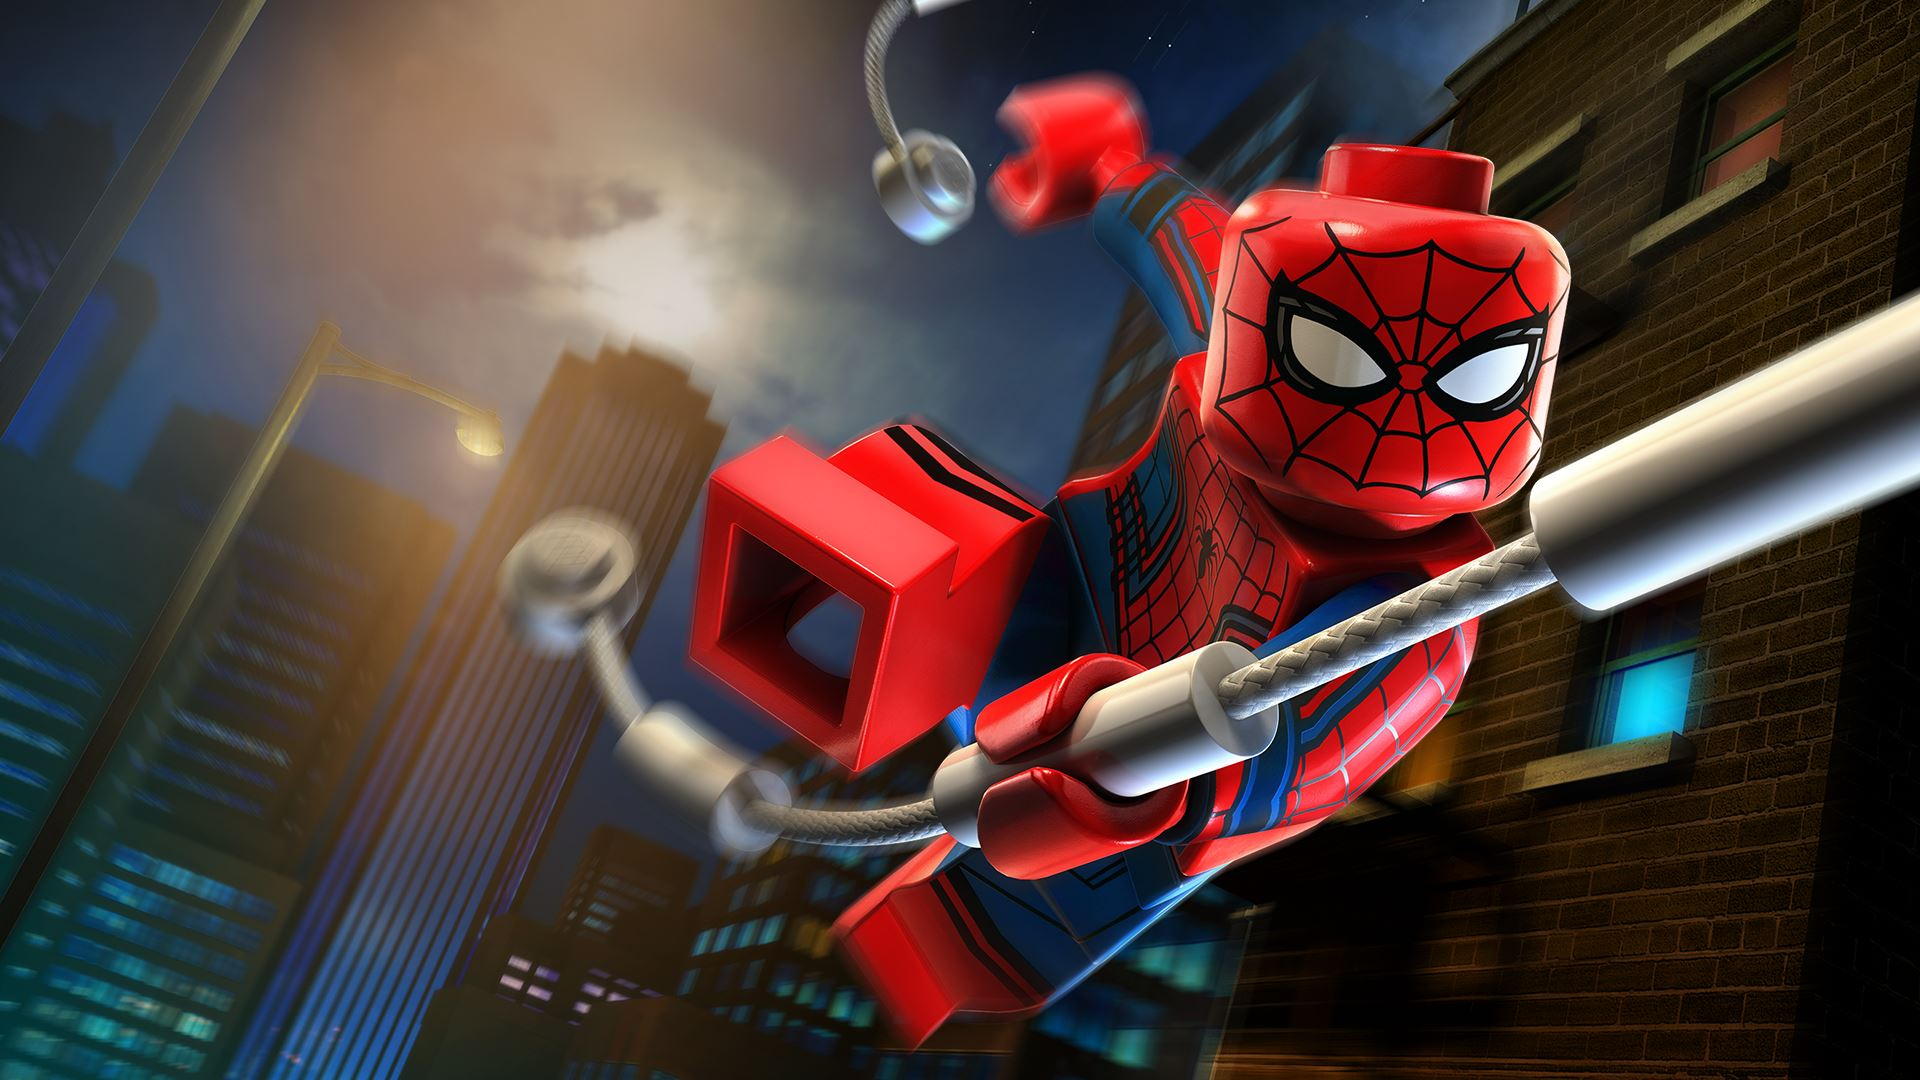 Rumor: LEGO 'Spider-Man: Homecoming' sets revealed? - Spider-Man News